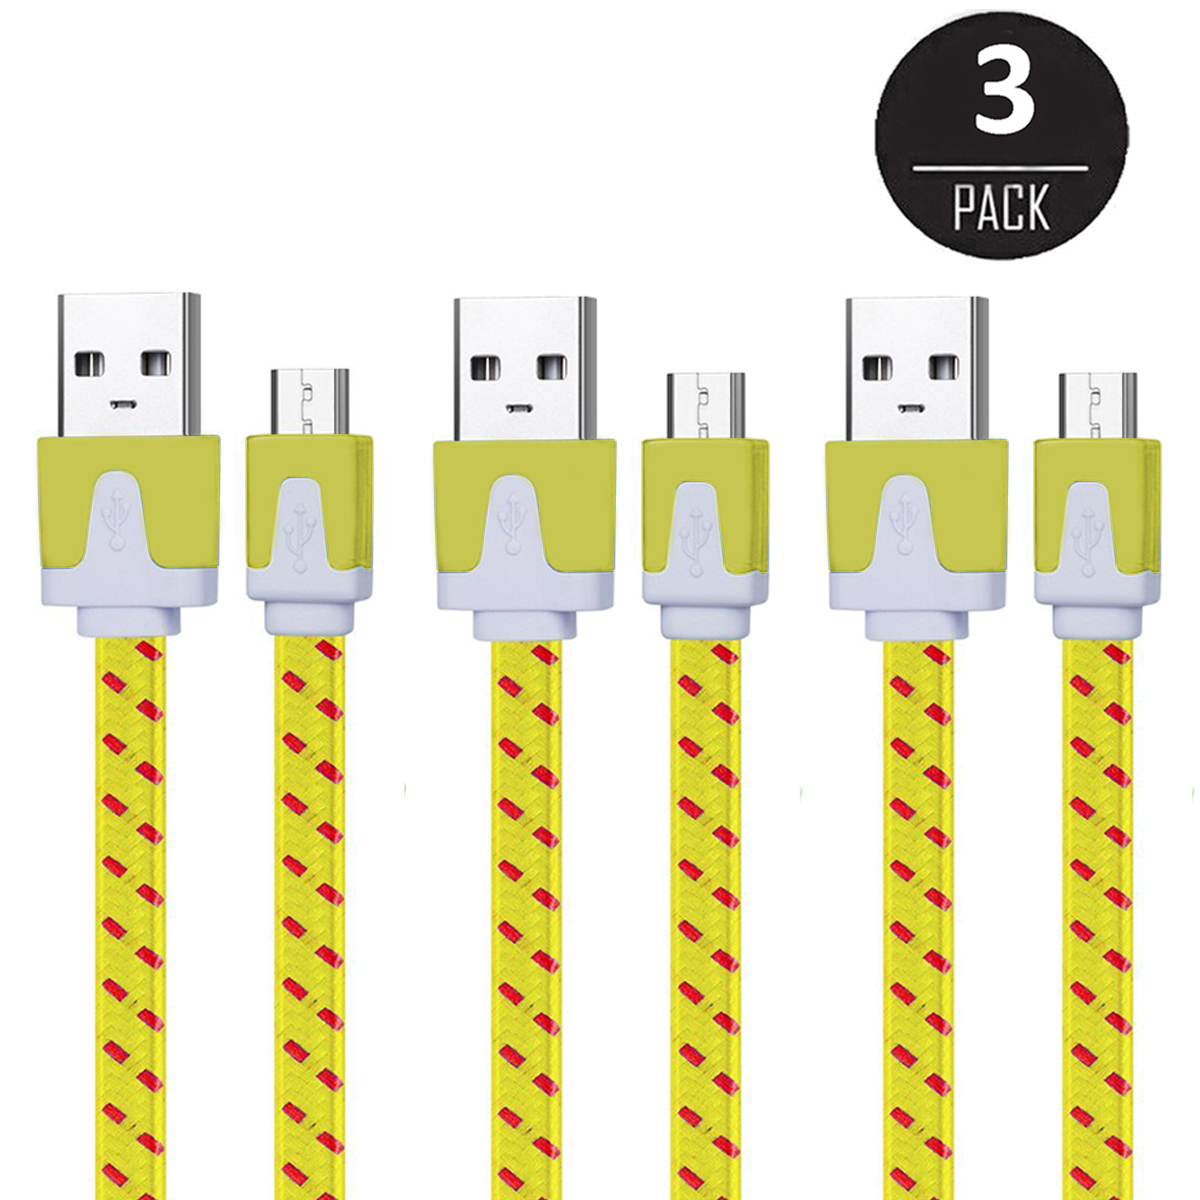 EEEKit 3 Packs 6Ft Nylon Braided Micro USB Charging Sync Data Cable Charger Cord for Android Phones, Samsung Galaxy S7 S6/Note 5, HTC, LG